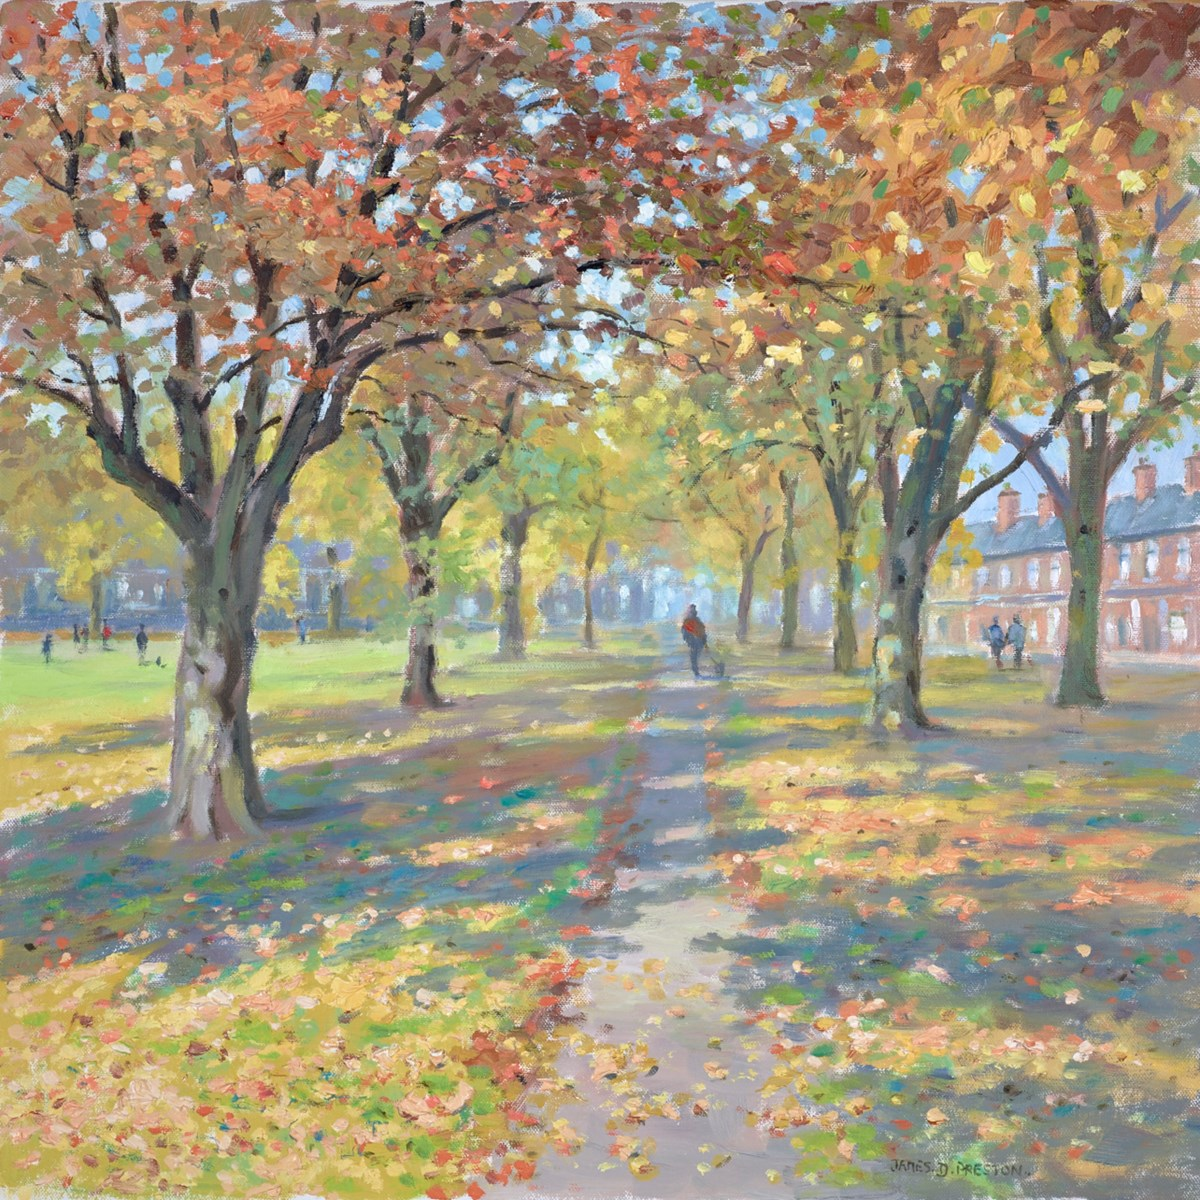 Autumn, Chester Green by james preston -  sized 20x20 inches. Available from Whitewall Galleries